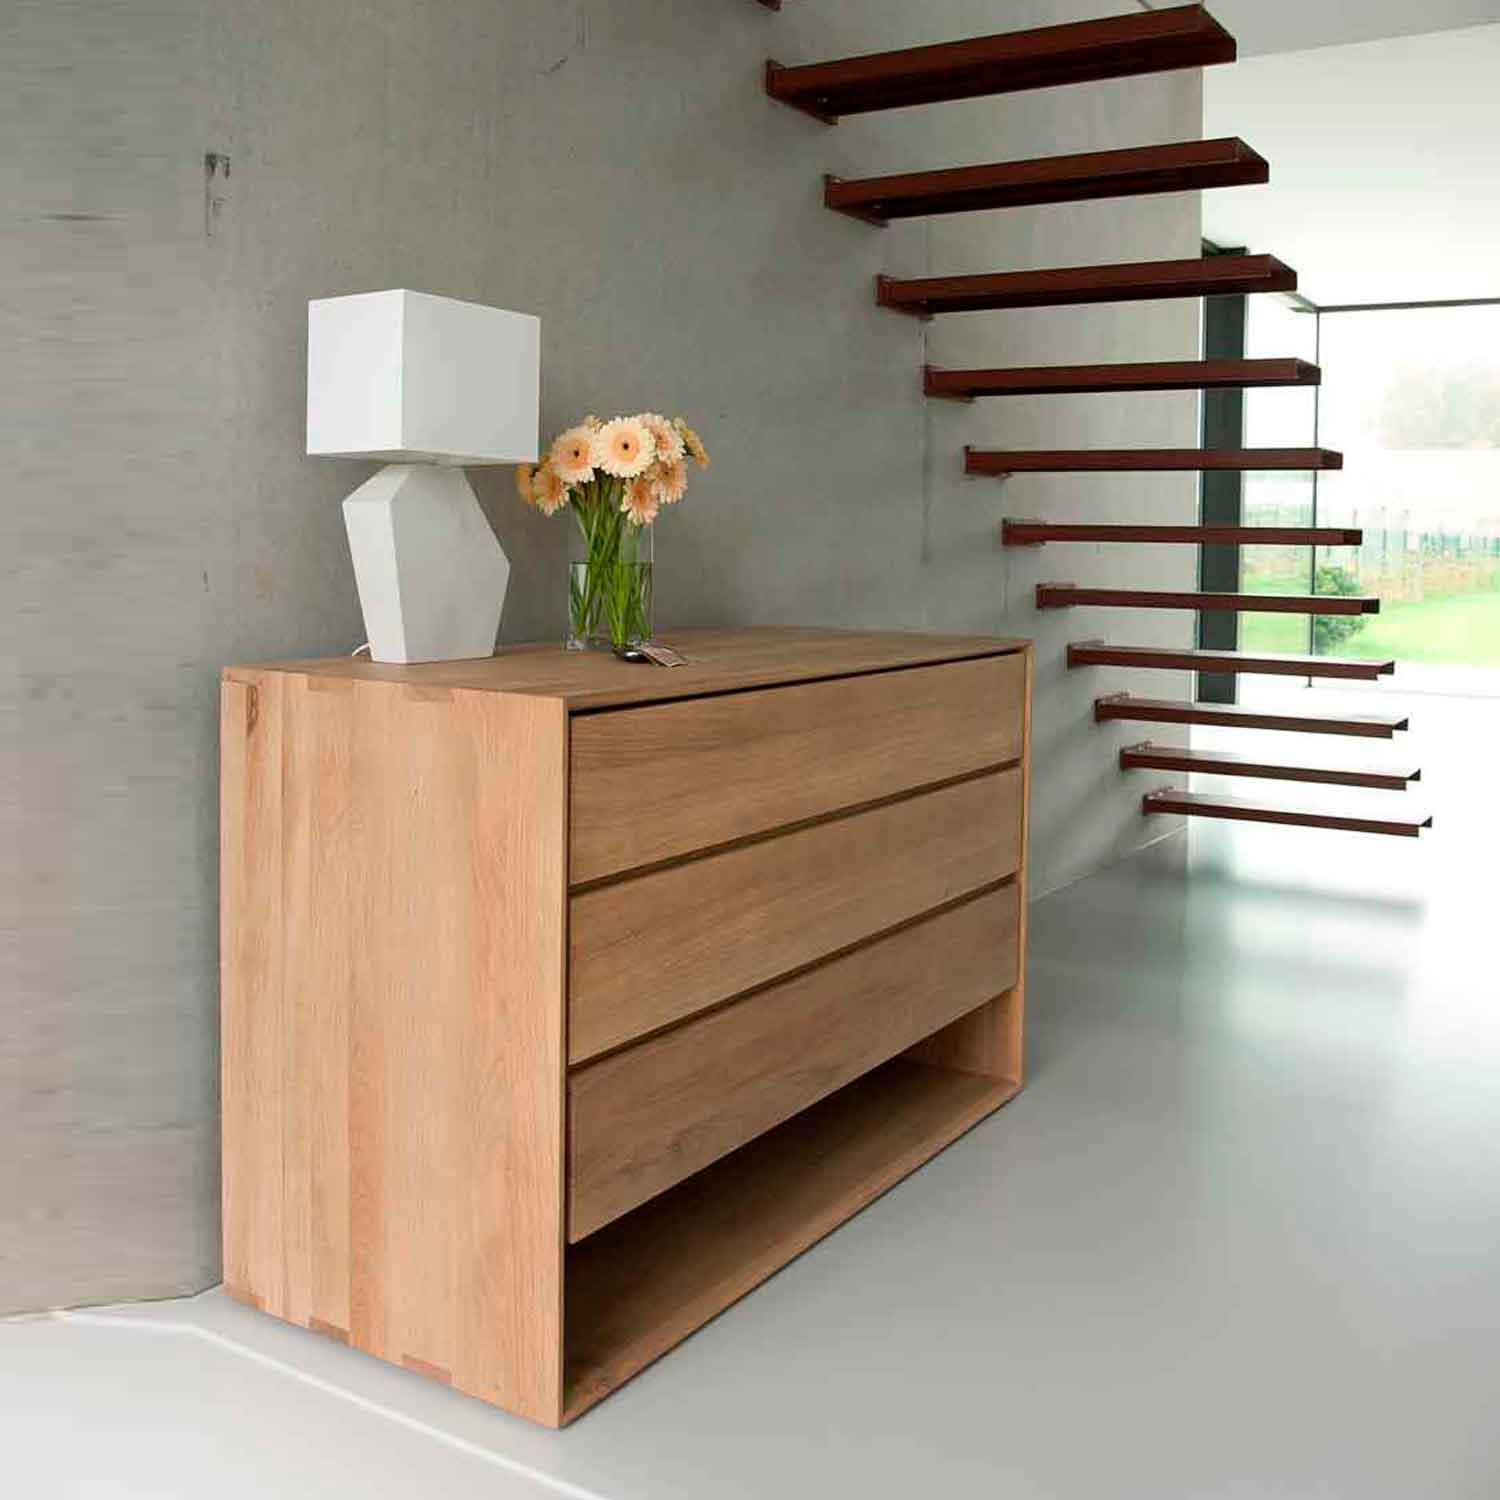 Ethnicraft Oak Nordic chest of drawers - 3 drawers